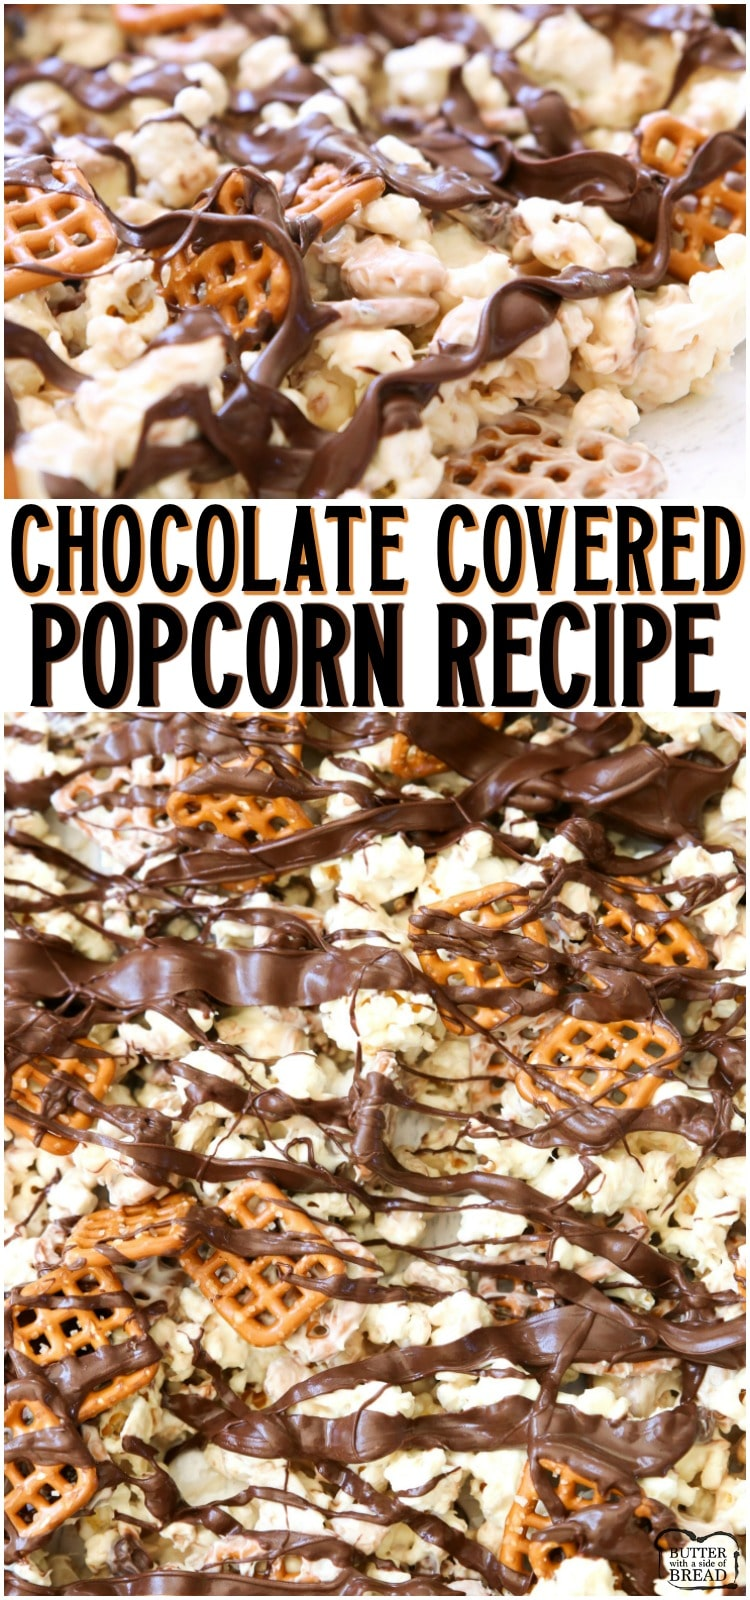 Chocolate Covered Popcorn made with white and semi sweet chocolate, pretzels and cashews! Our easy-to-make white chocolate popcorn recipe is the perfect blend of salty & sweet.